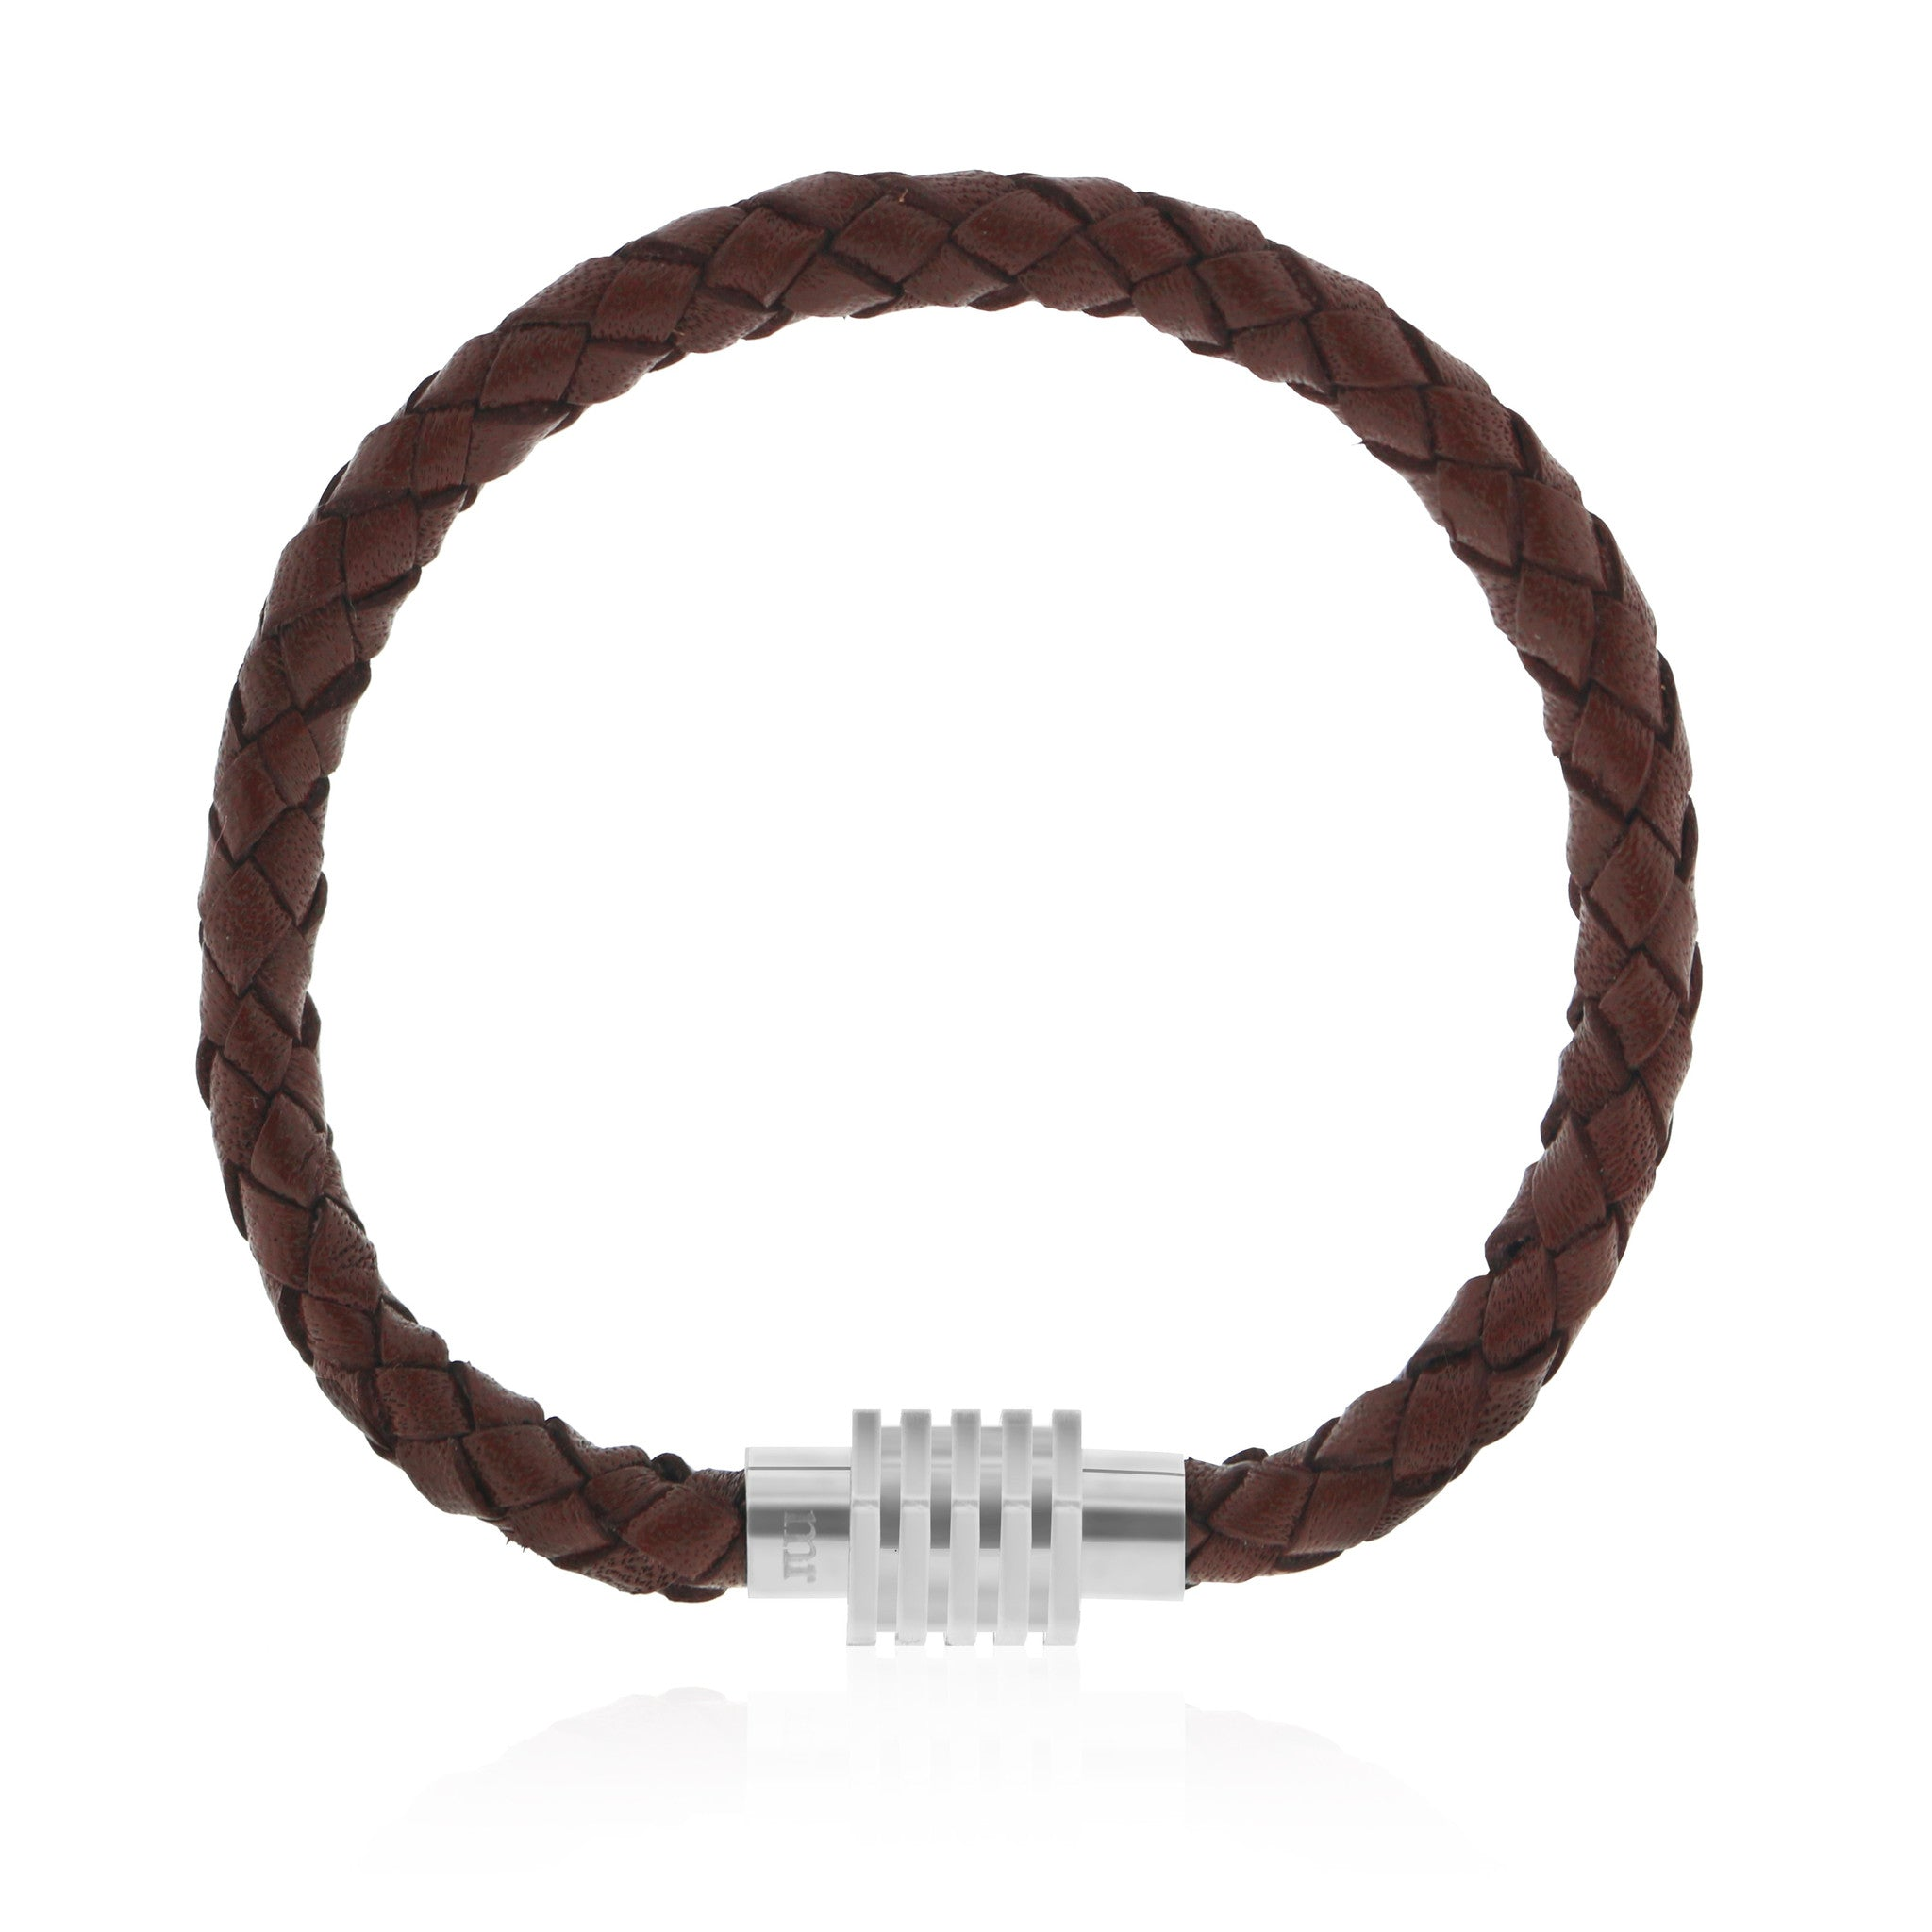 Mr. Jewellery - Braided Bracelet Brown - Luxedy